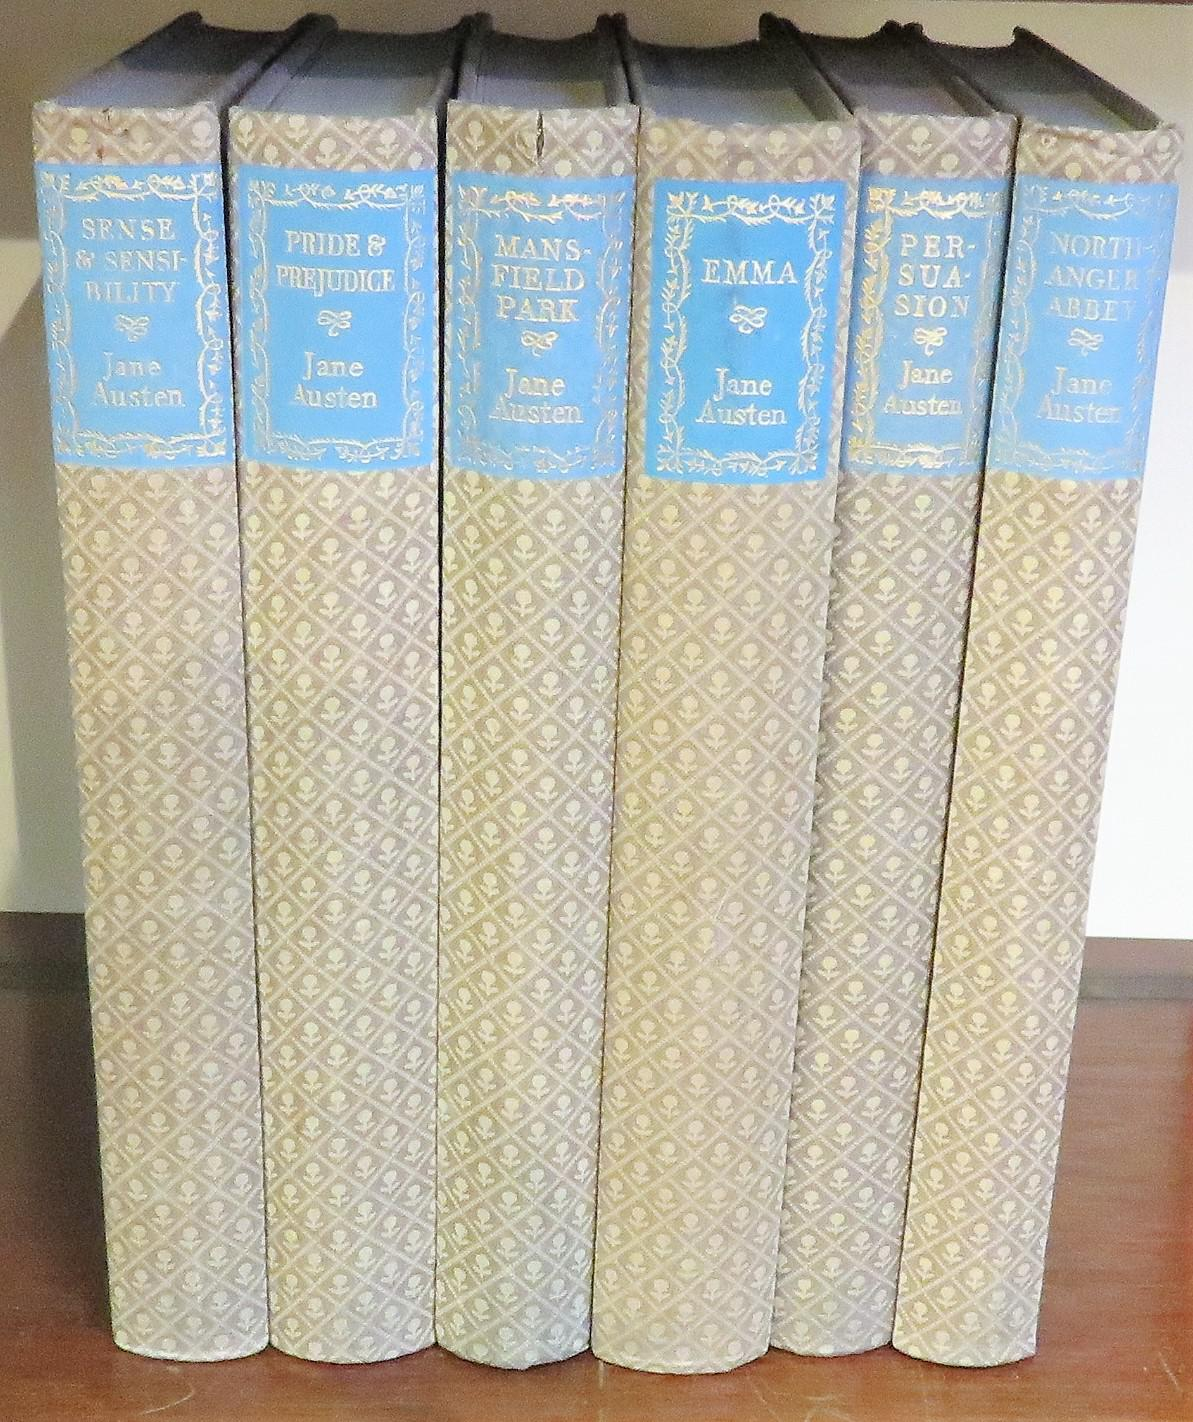 The Works of Jane Austen in Six Complete Volumes